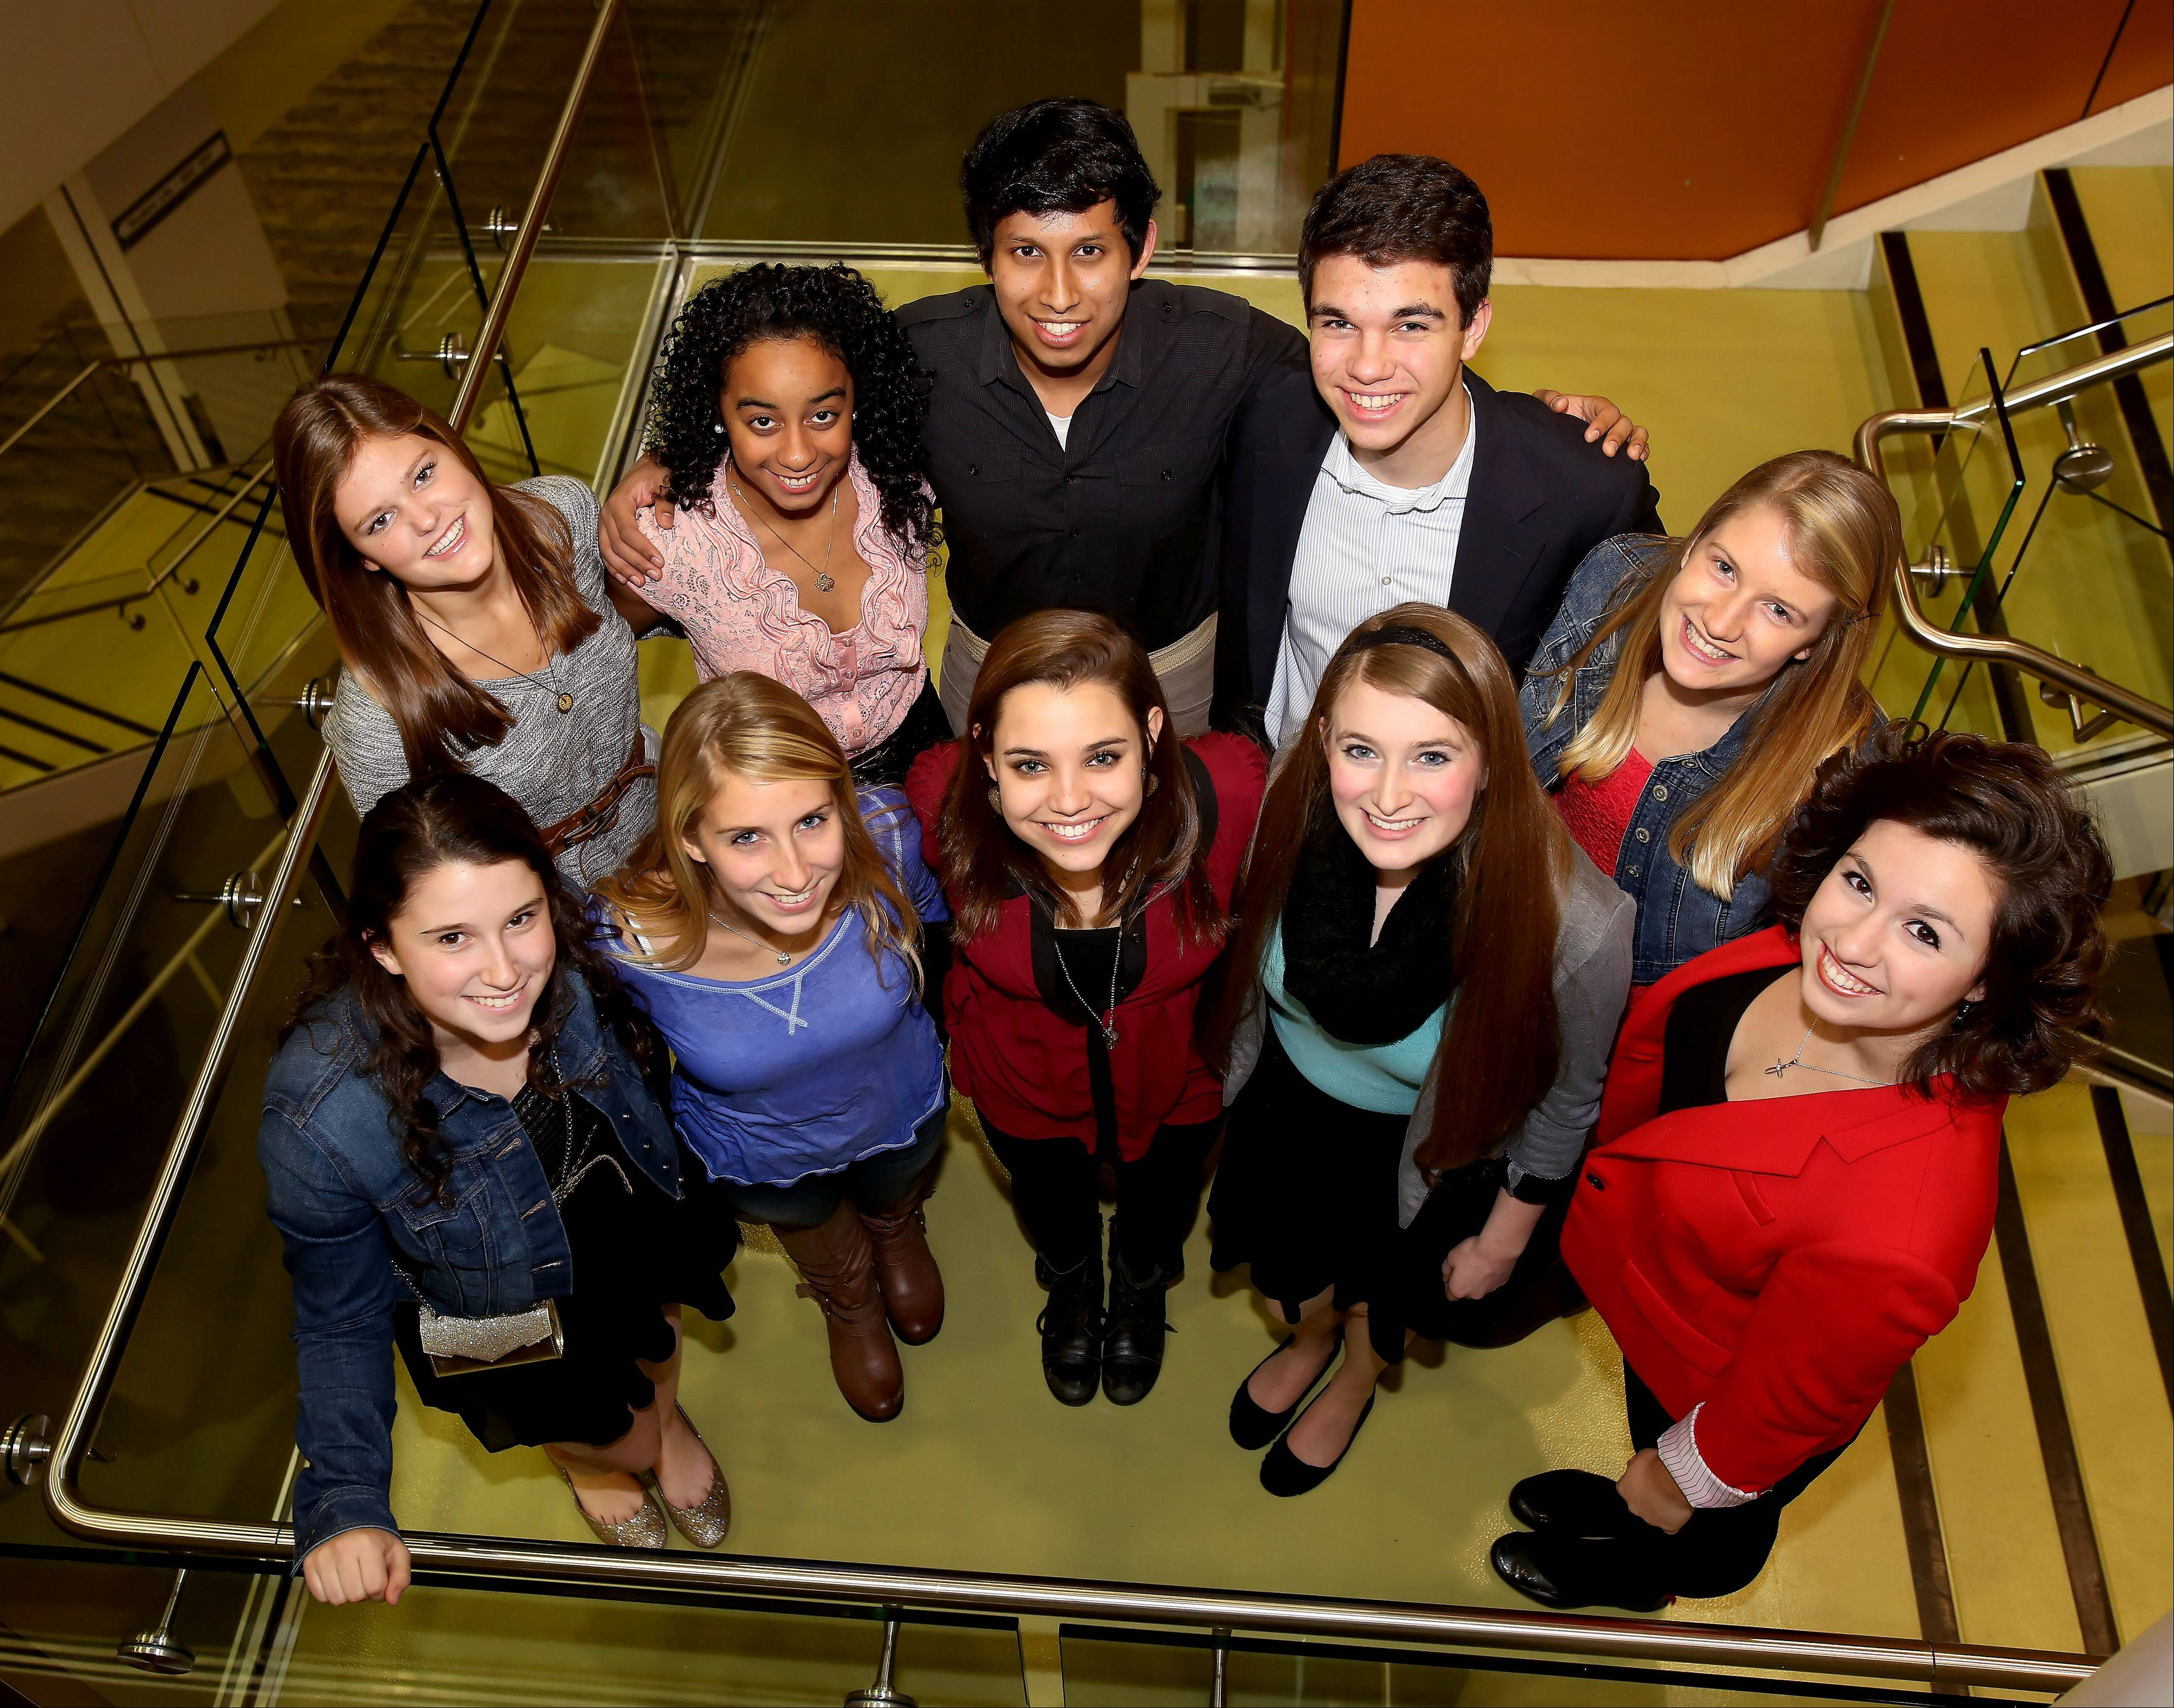 The 10 members of the 2013-14 Daily Herald DuPage County Leadership Team meet at the College of DuPage. Back row, from left: Katie Mann, Wheaton Academy; Alissa Whyte, Fenton High School; Silas Ferrao, Naperville Central; Austin Hansen, Naperville North; Maria McDaniel, Naperville North. Front row, from left: Mary Doro, Downers Grove North; Aeriel Euhus, Wheaton North; Meg Maloney, Glenbard West; Sienna Crosby, Glenbard North and Maggie O'Brien, Addison Trail.